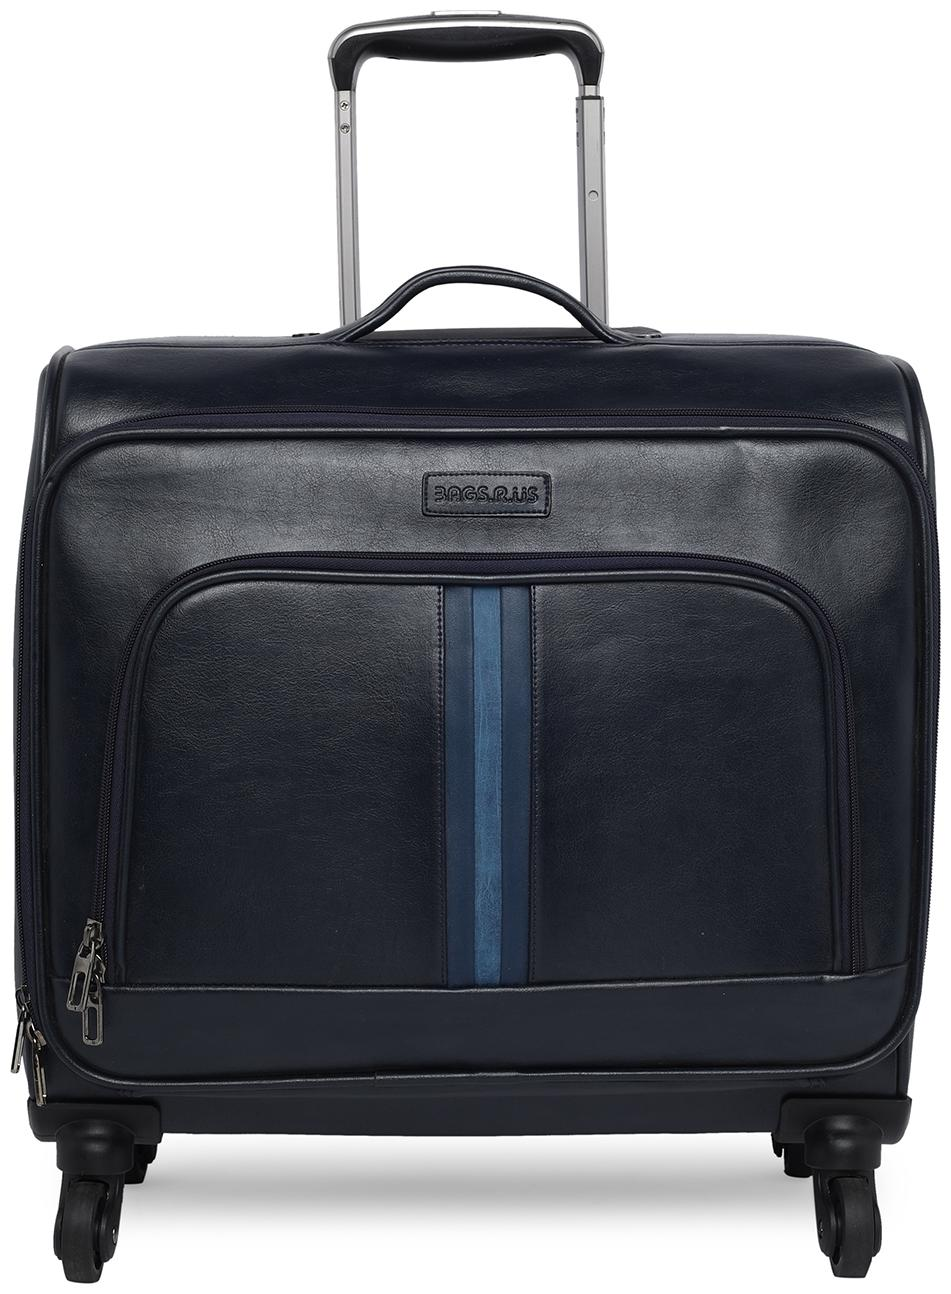 Bagsrus 4 Wheel 38 L Travel Laptop Roller Case Check In Small Cabin Trolley Luggage Bag by Bagsrus